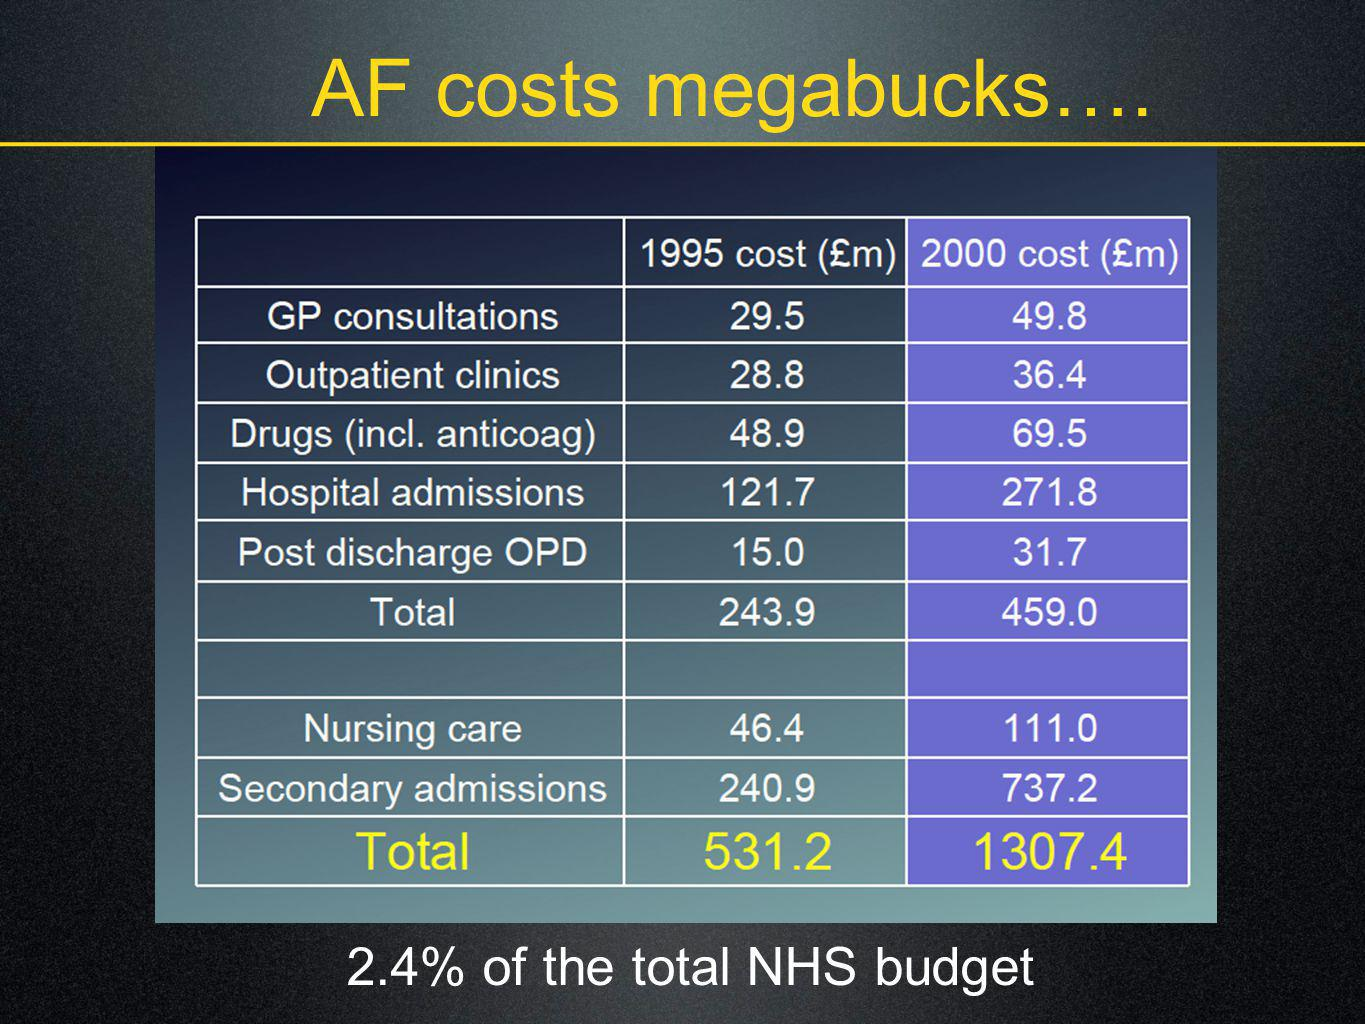 2.4% of the total NHS budget